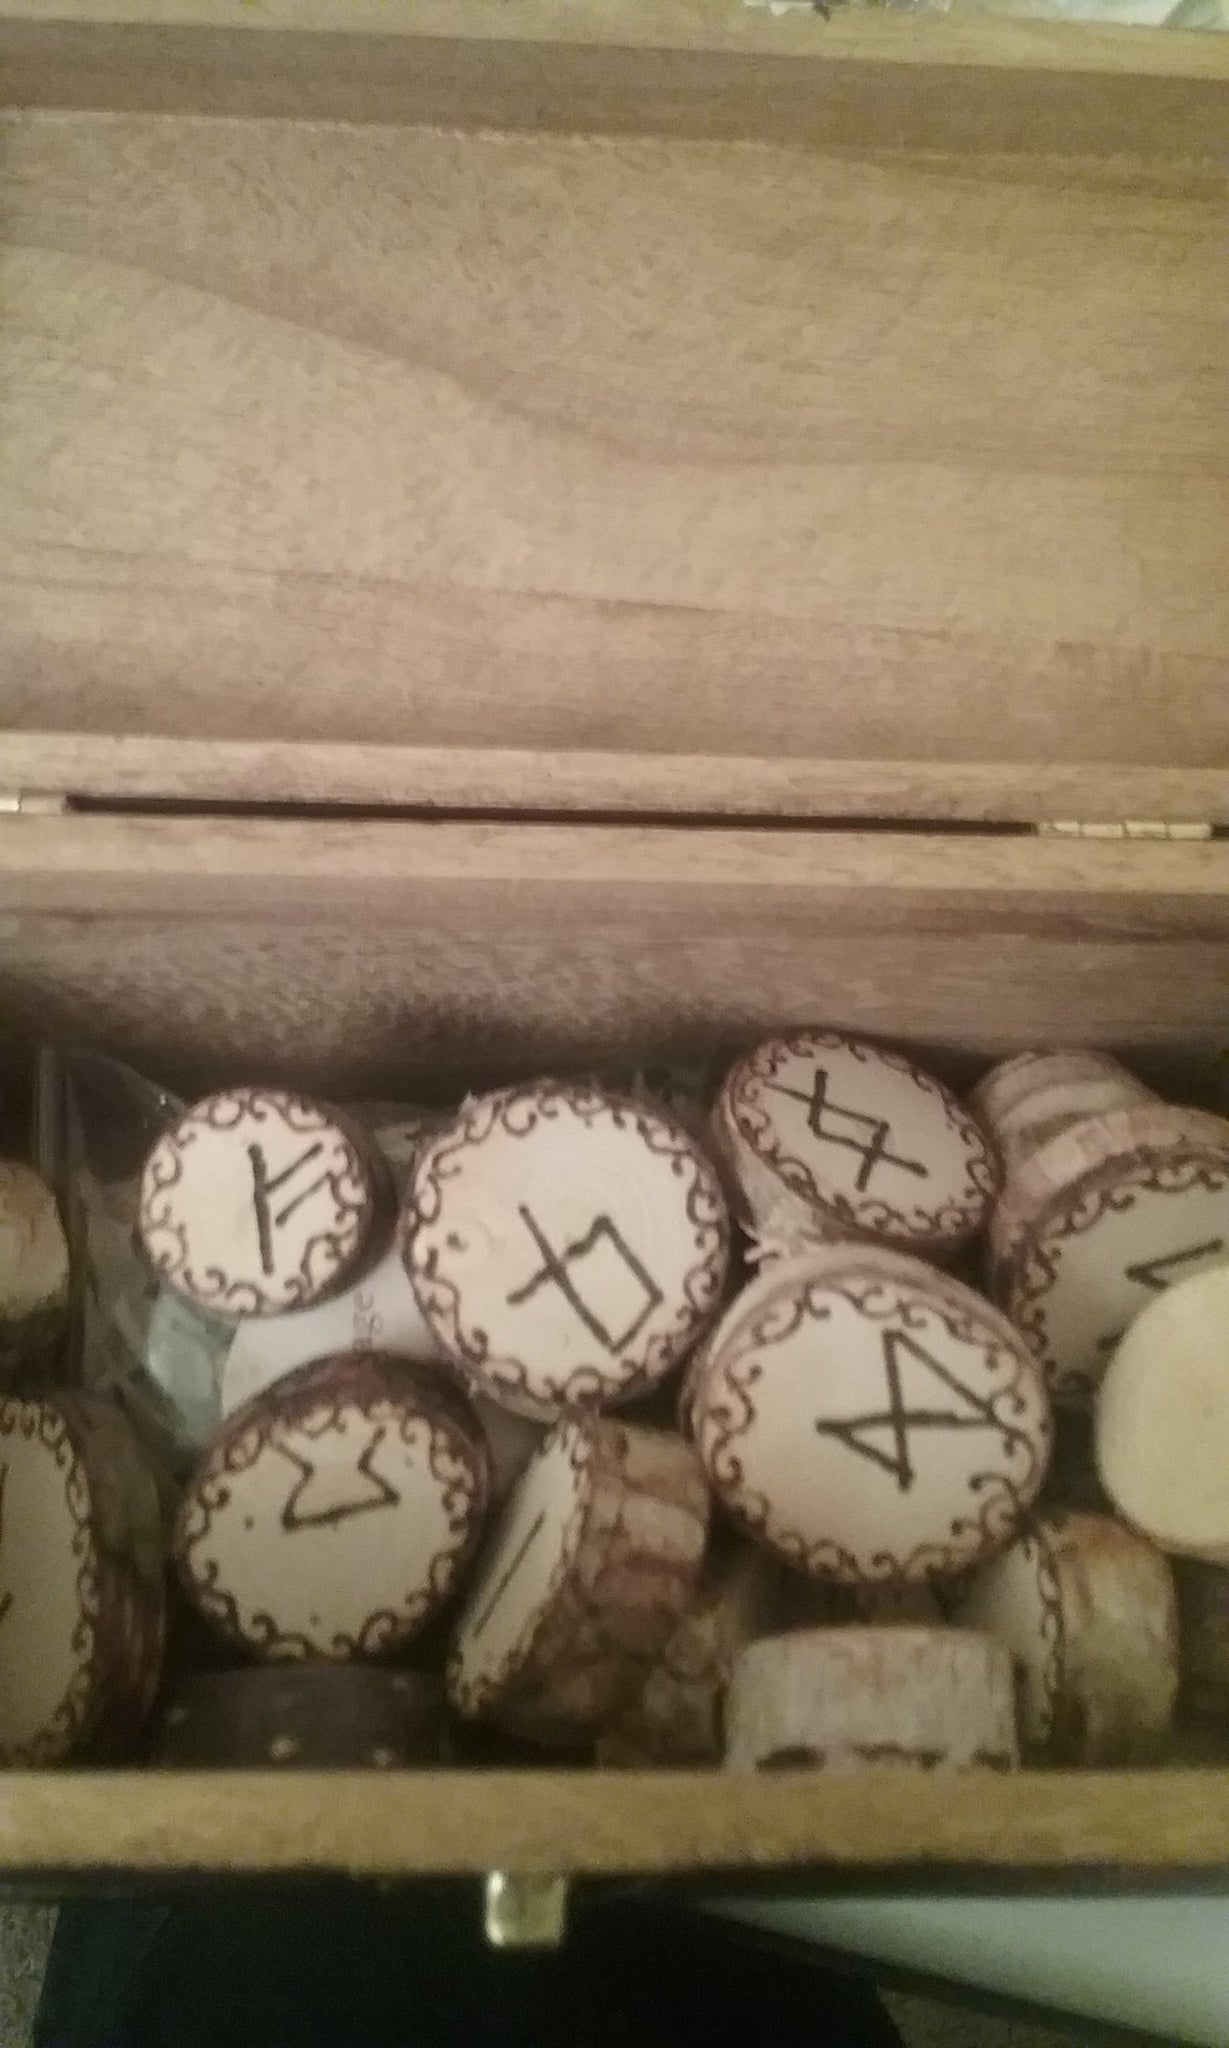 Equinox Moon Elder Futhark Rune Set